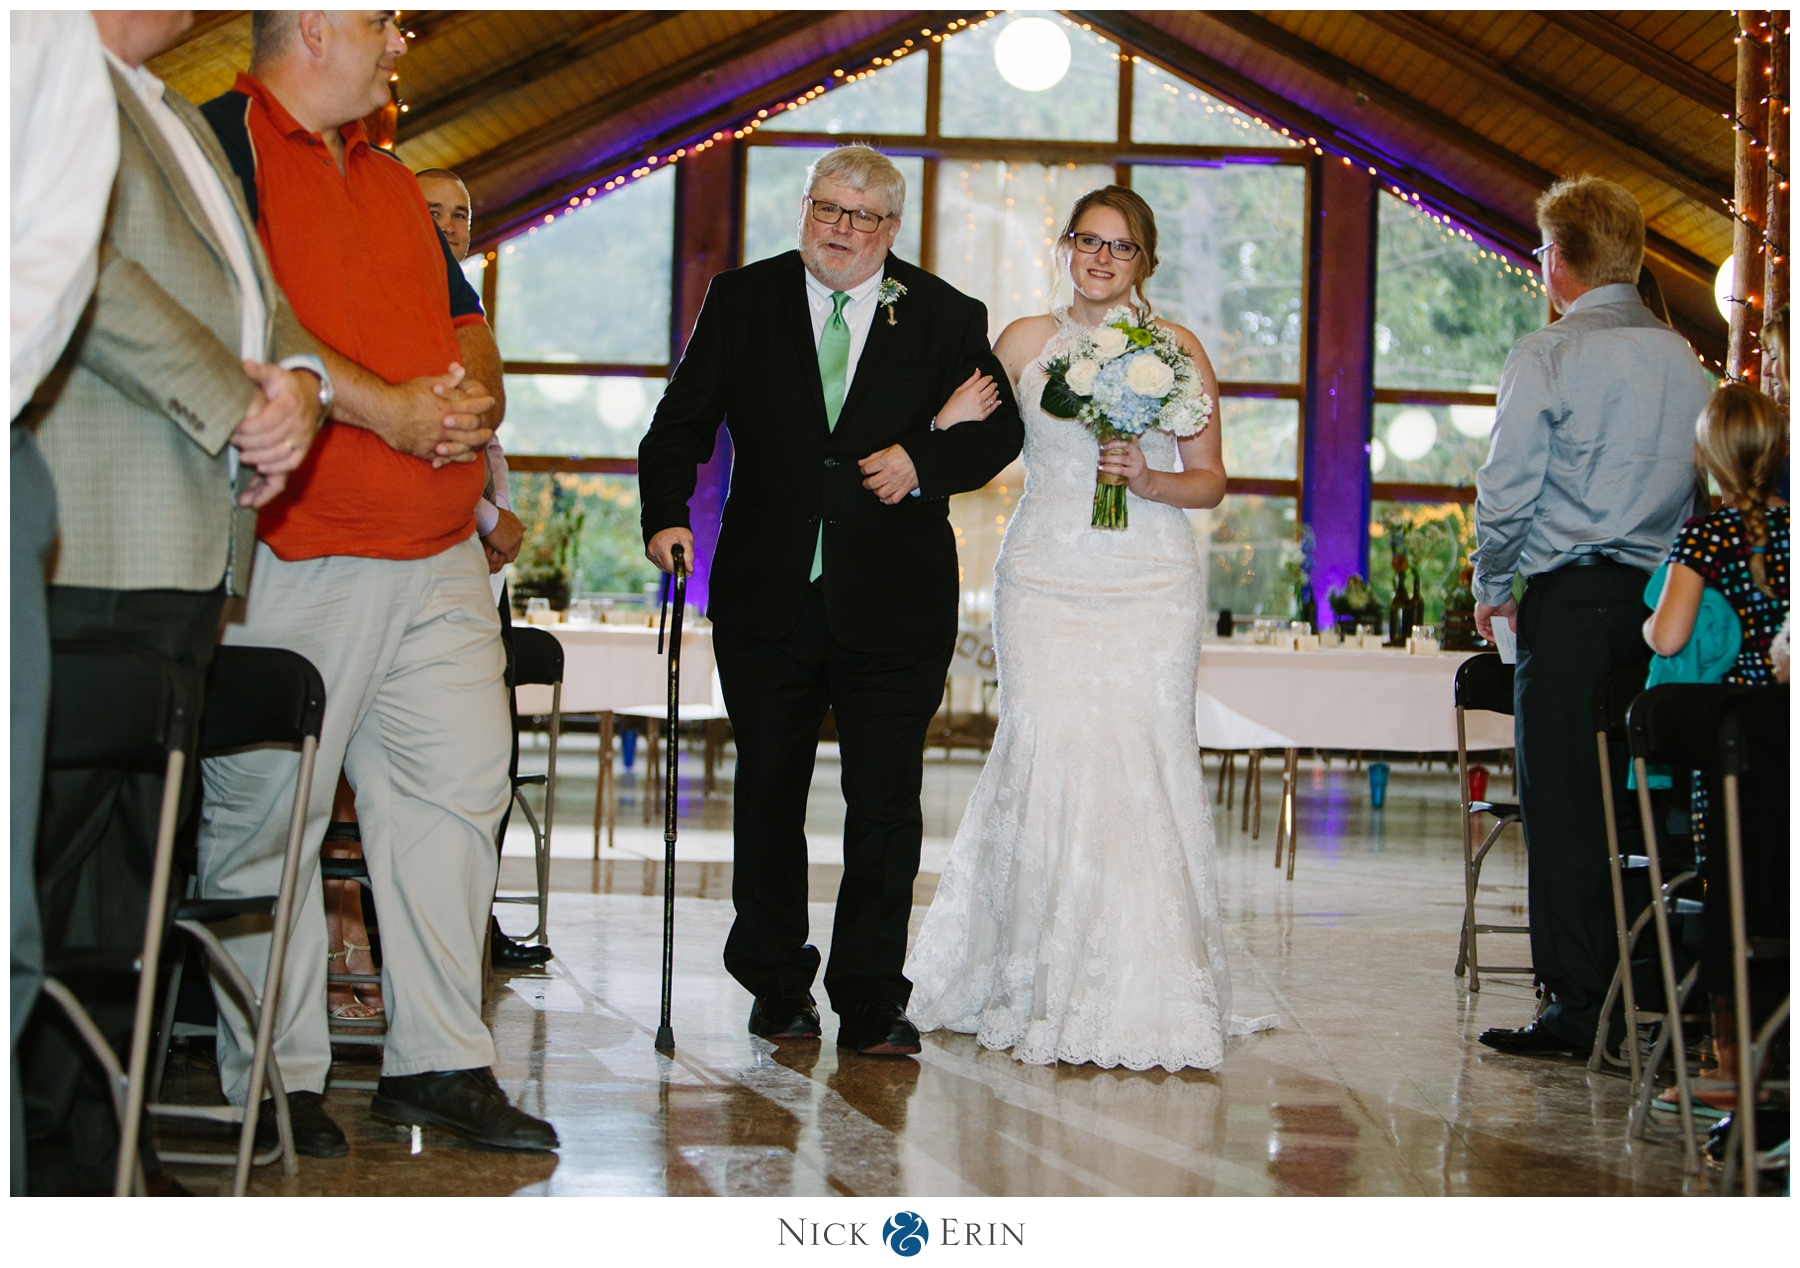 donner_photography_iowa-wedding_katie-chris_0036